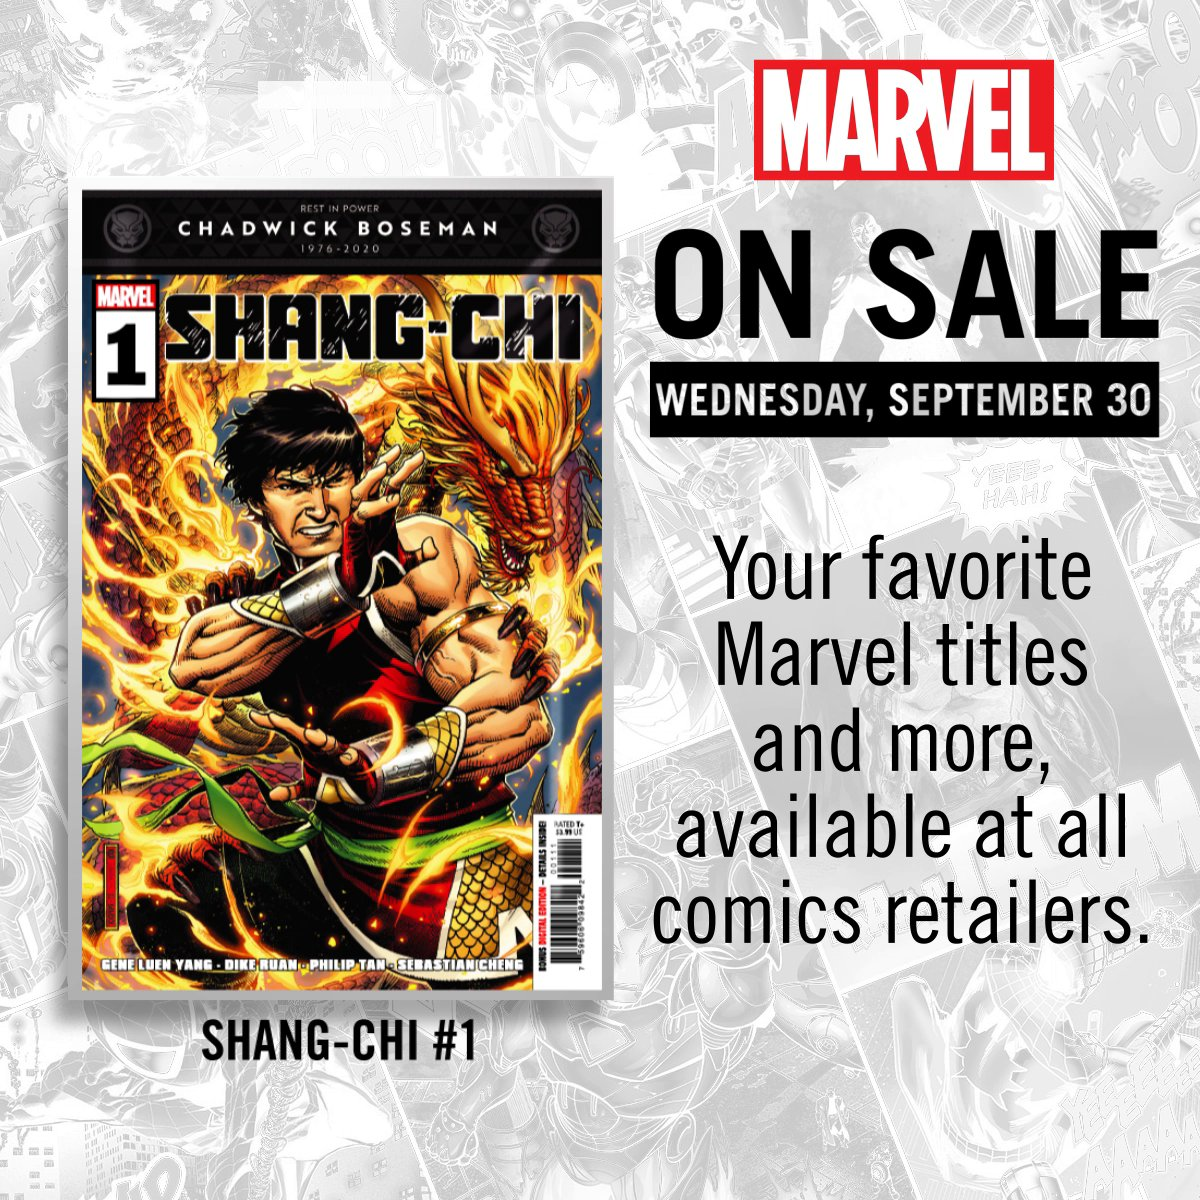 New comics are coming your way next week! Whats at the top of your reading list?